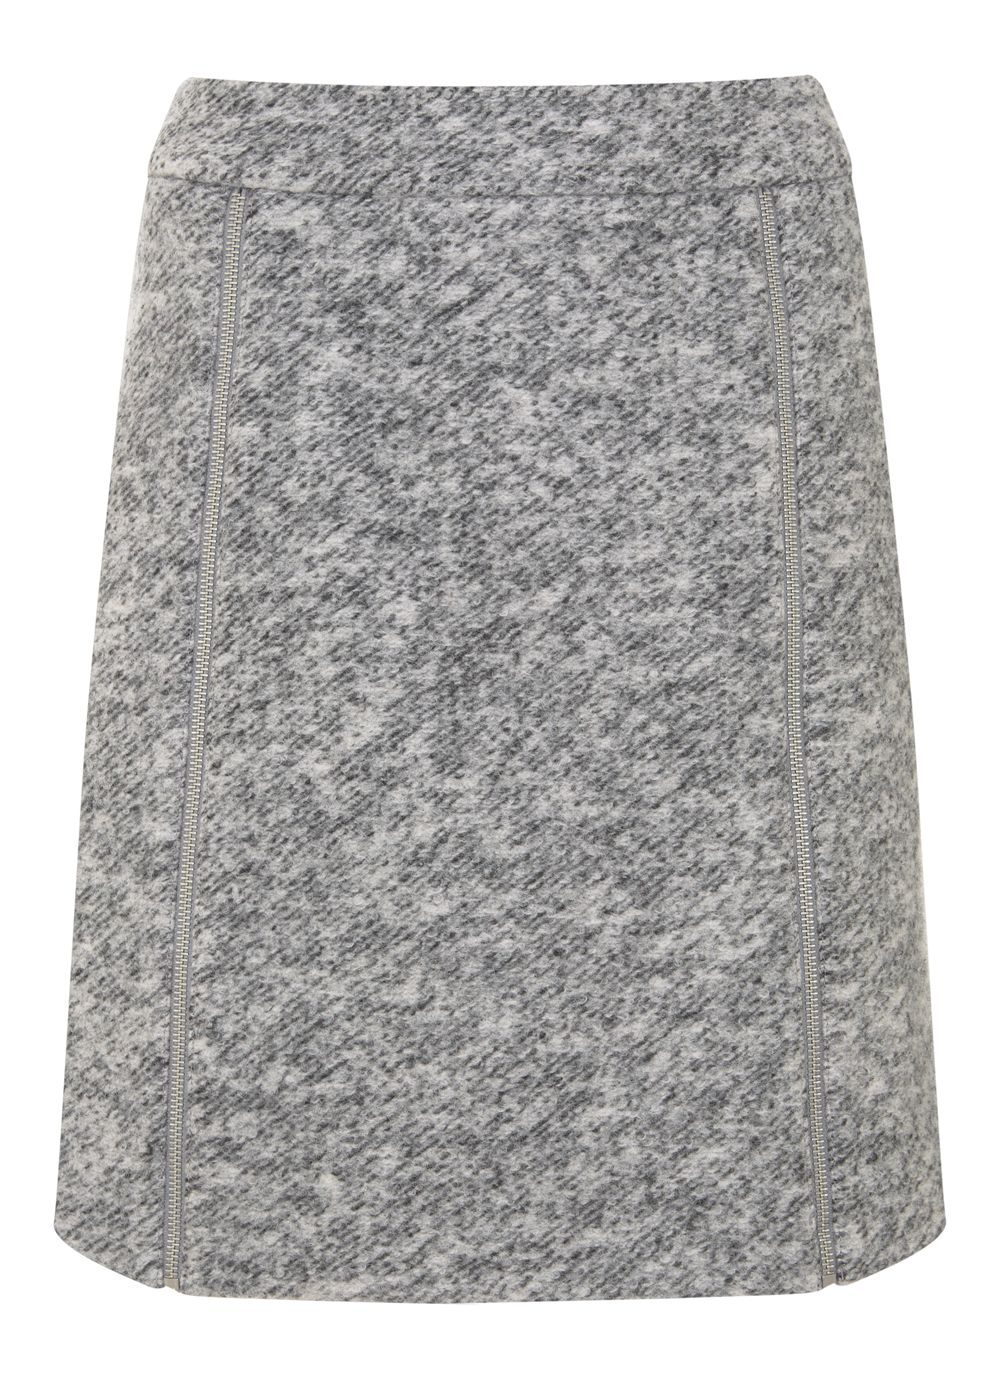 Mint Velvet Grey Textured Zip Detail Skirt, Light Grey